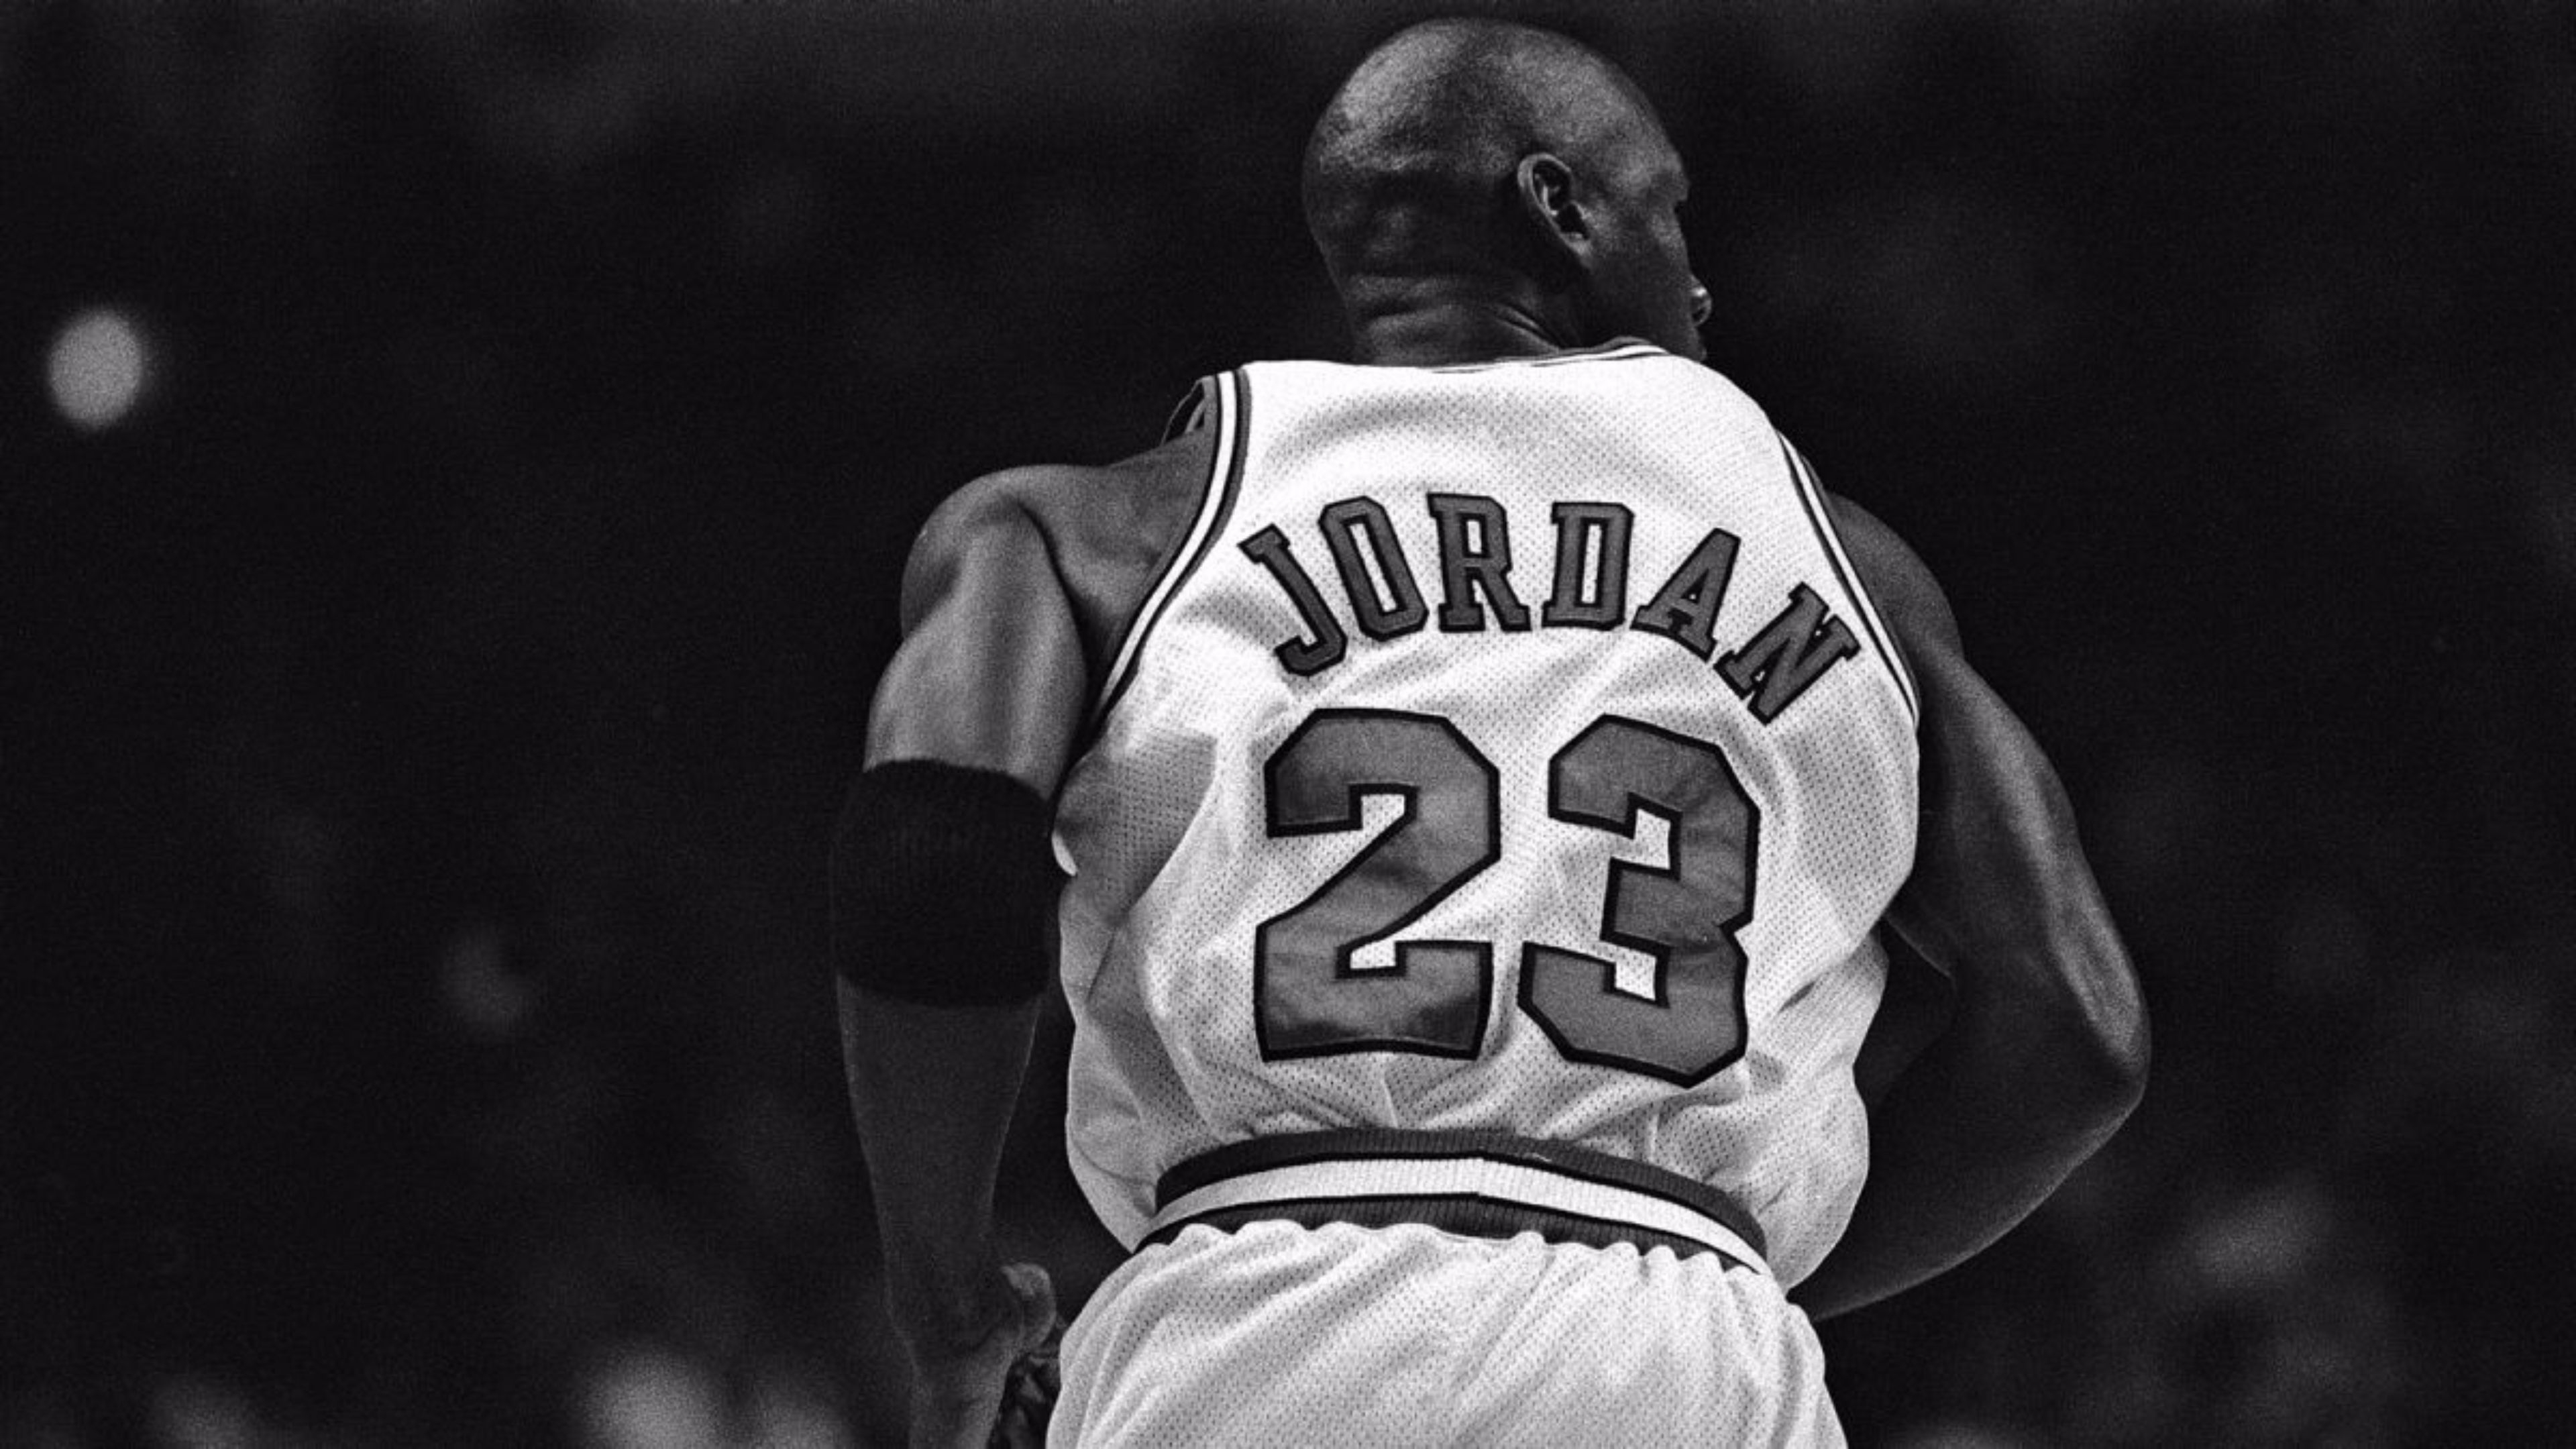 michael jordan wallpaper hd for desktop, iphone & mobile